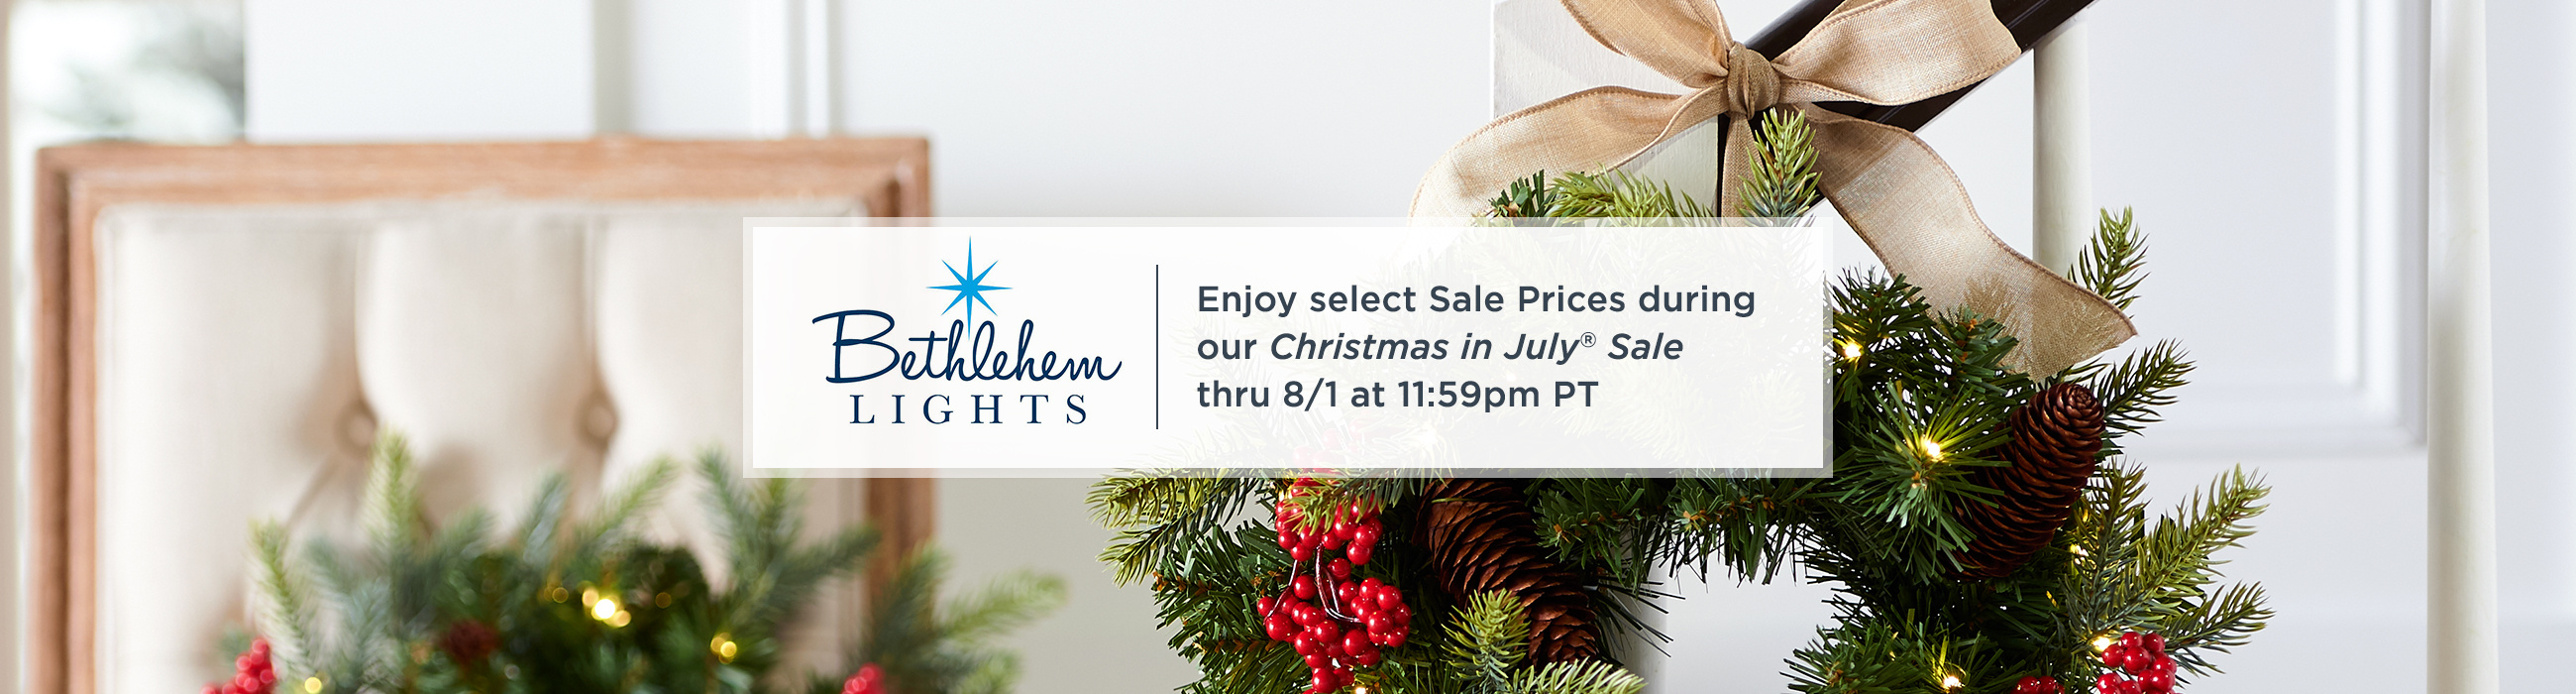 bethlehem lighting. Bethlehem Lights. Enjoy Select Sale Prices During Our Christmas In July® Thru 8 Lighting T